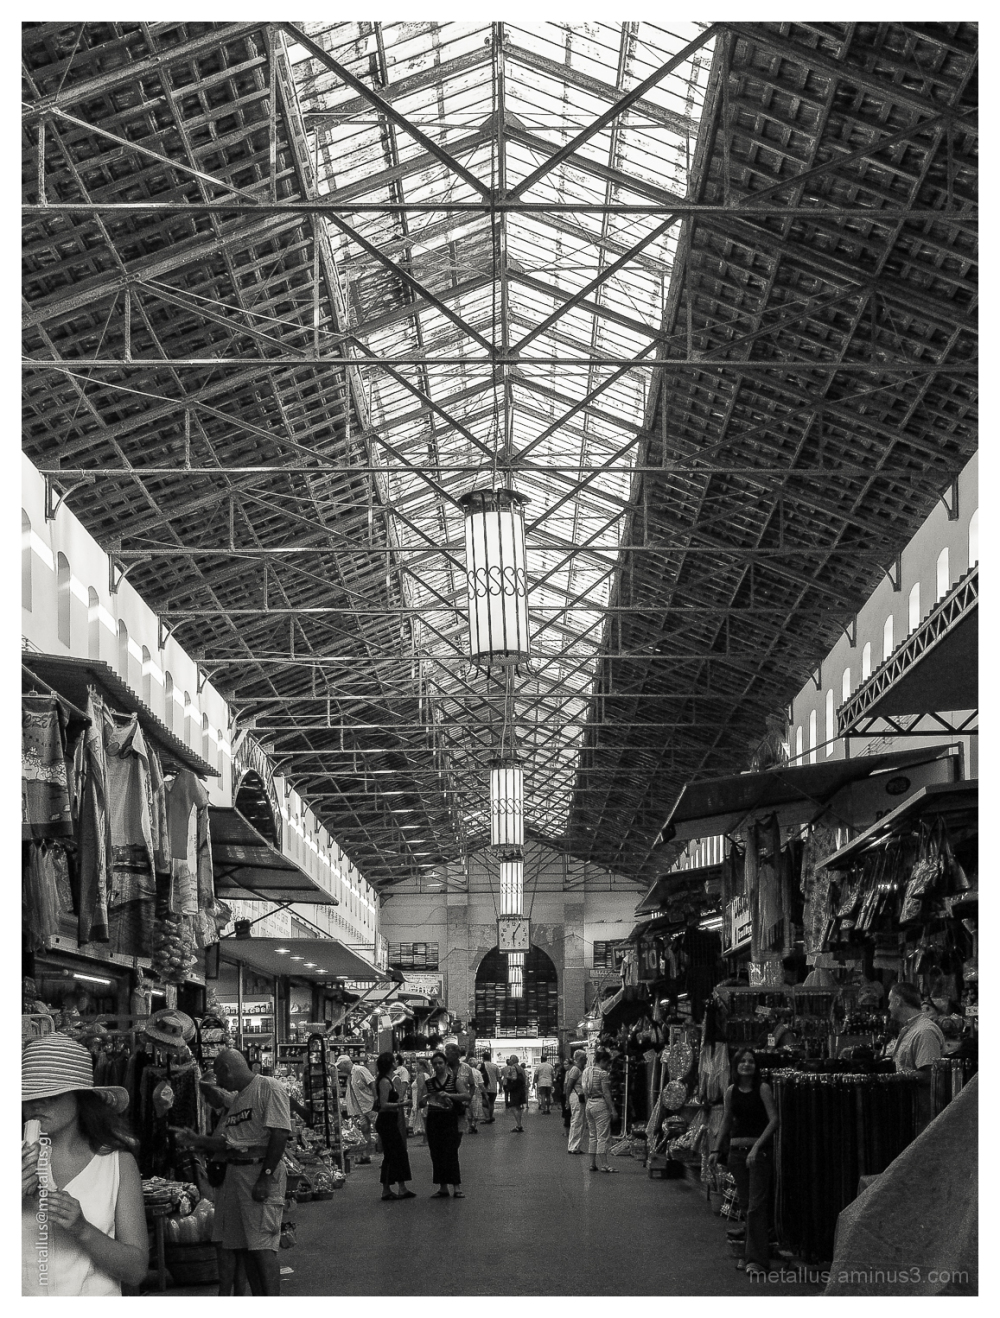 Public Market, Chania, Crete, Greece 2004